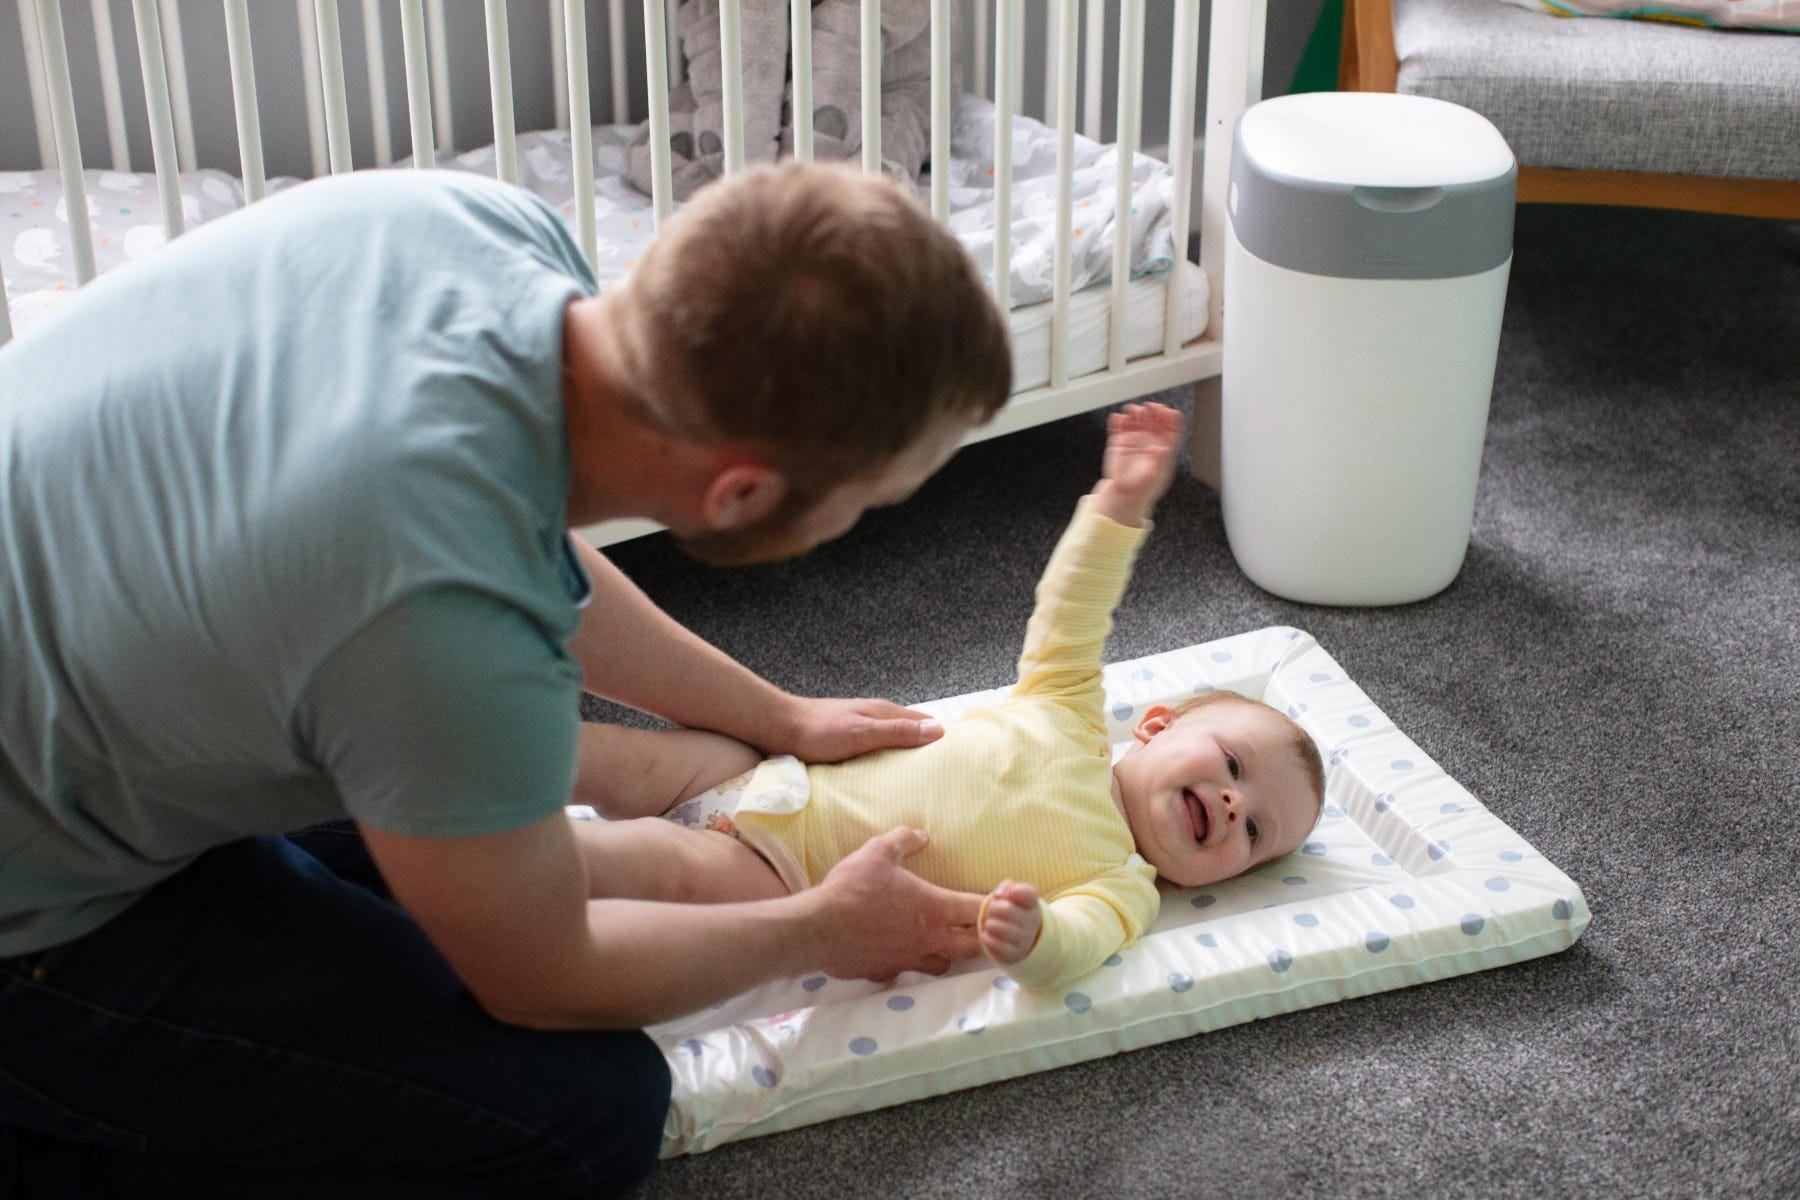 dad-changing-babys-nappy-on-changing-mat-in-nursery